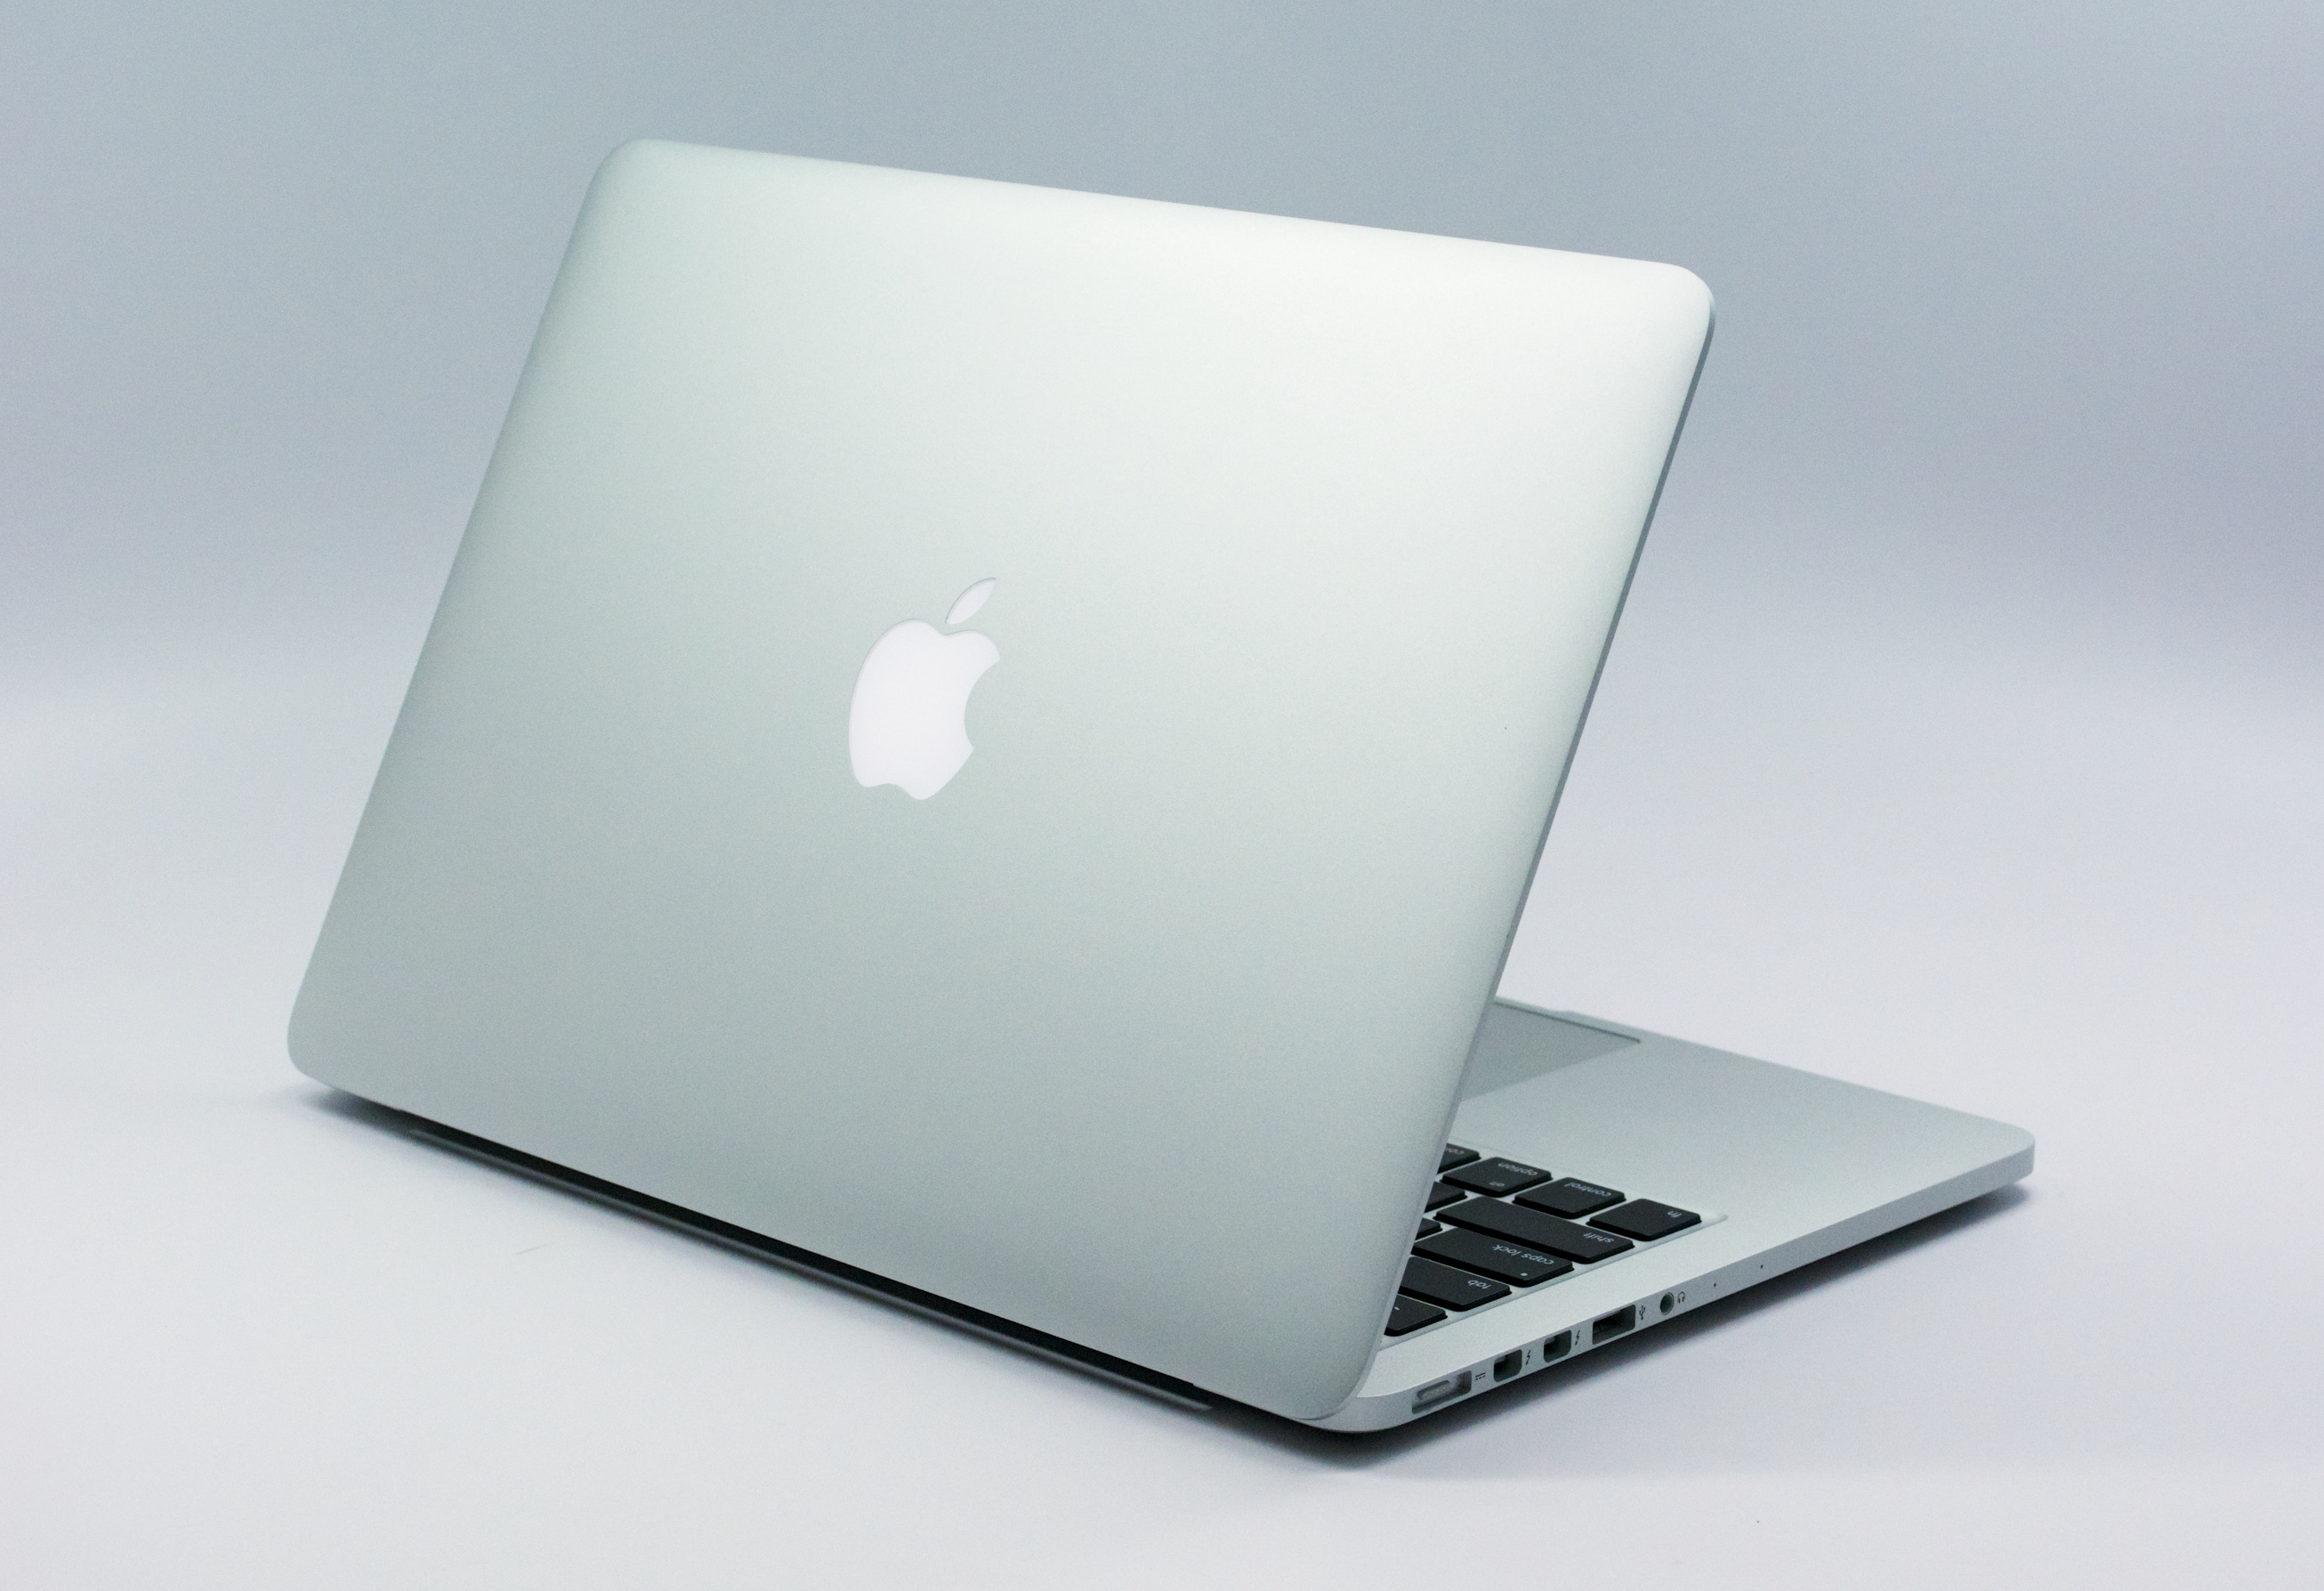 13 Inch Macbook Pro Retina Review Late 2013